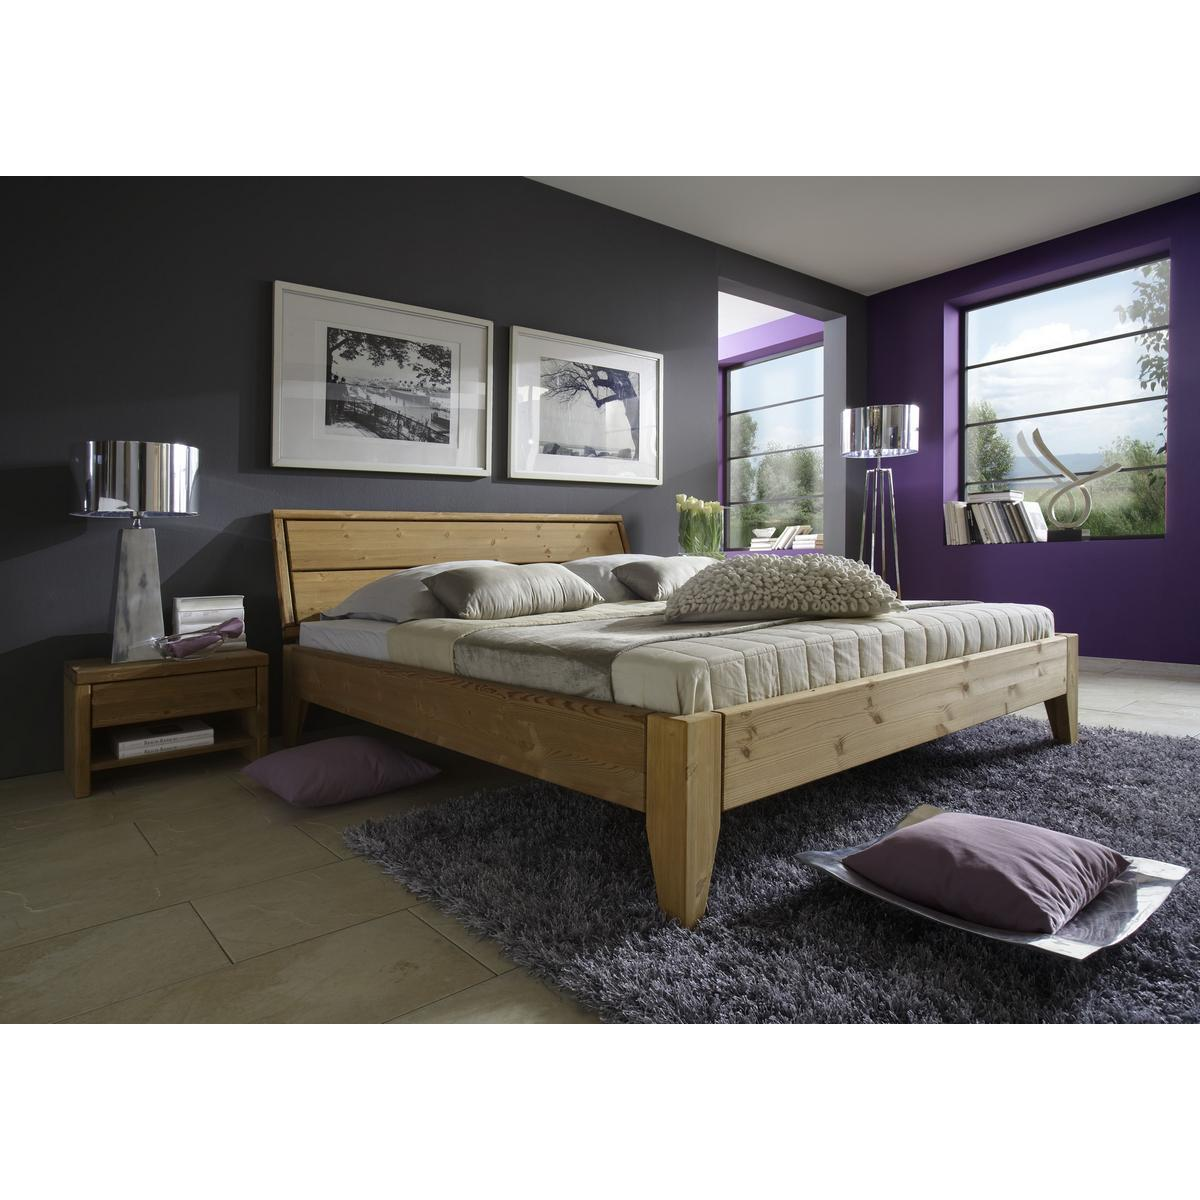 massivholz bett 180x200 xl easy sleep kiefer massiv gelaugt ge lt 9418 92 5. Black Bedroom Furniture Sets. Home Design Ideas